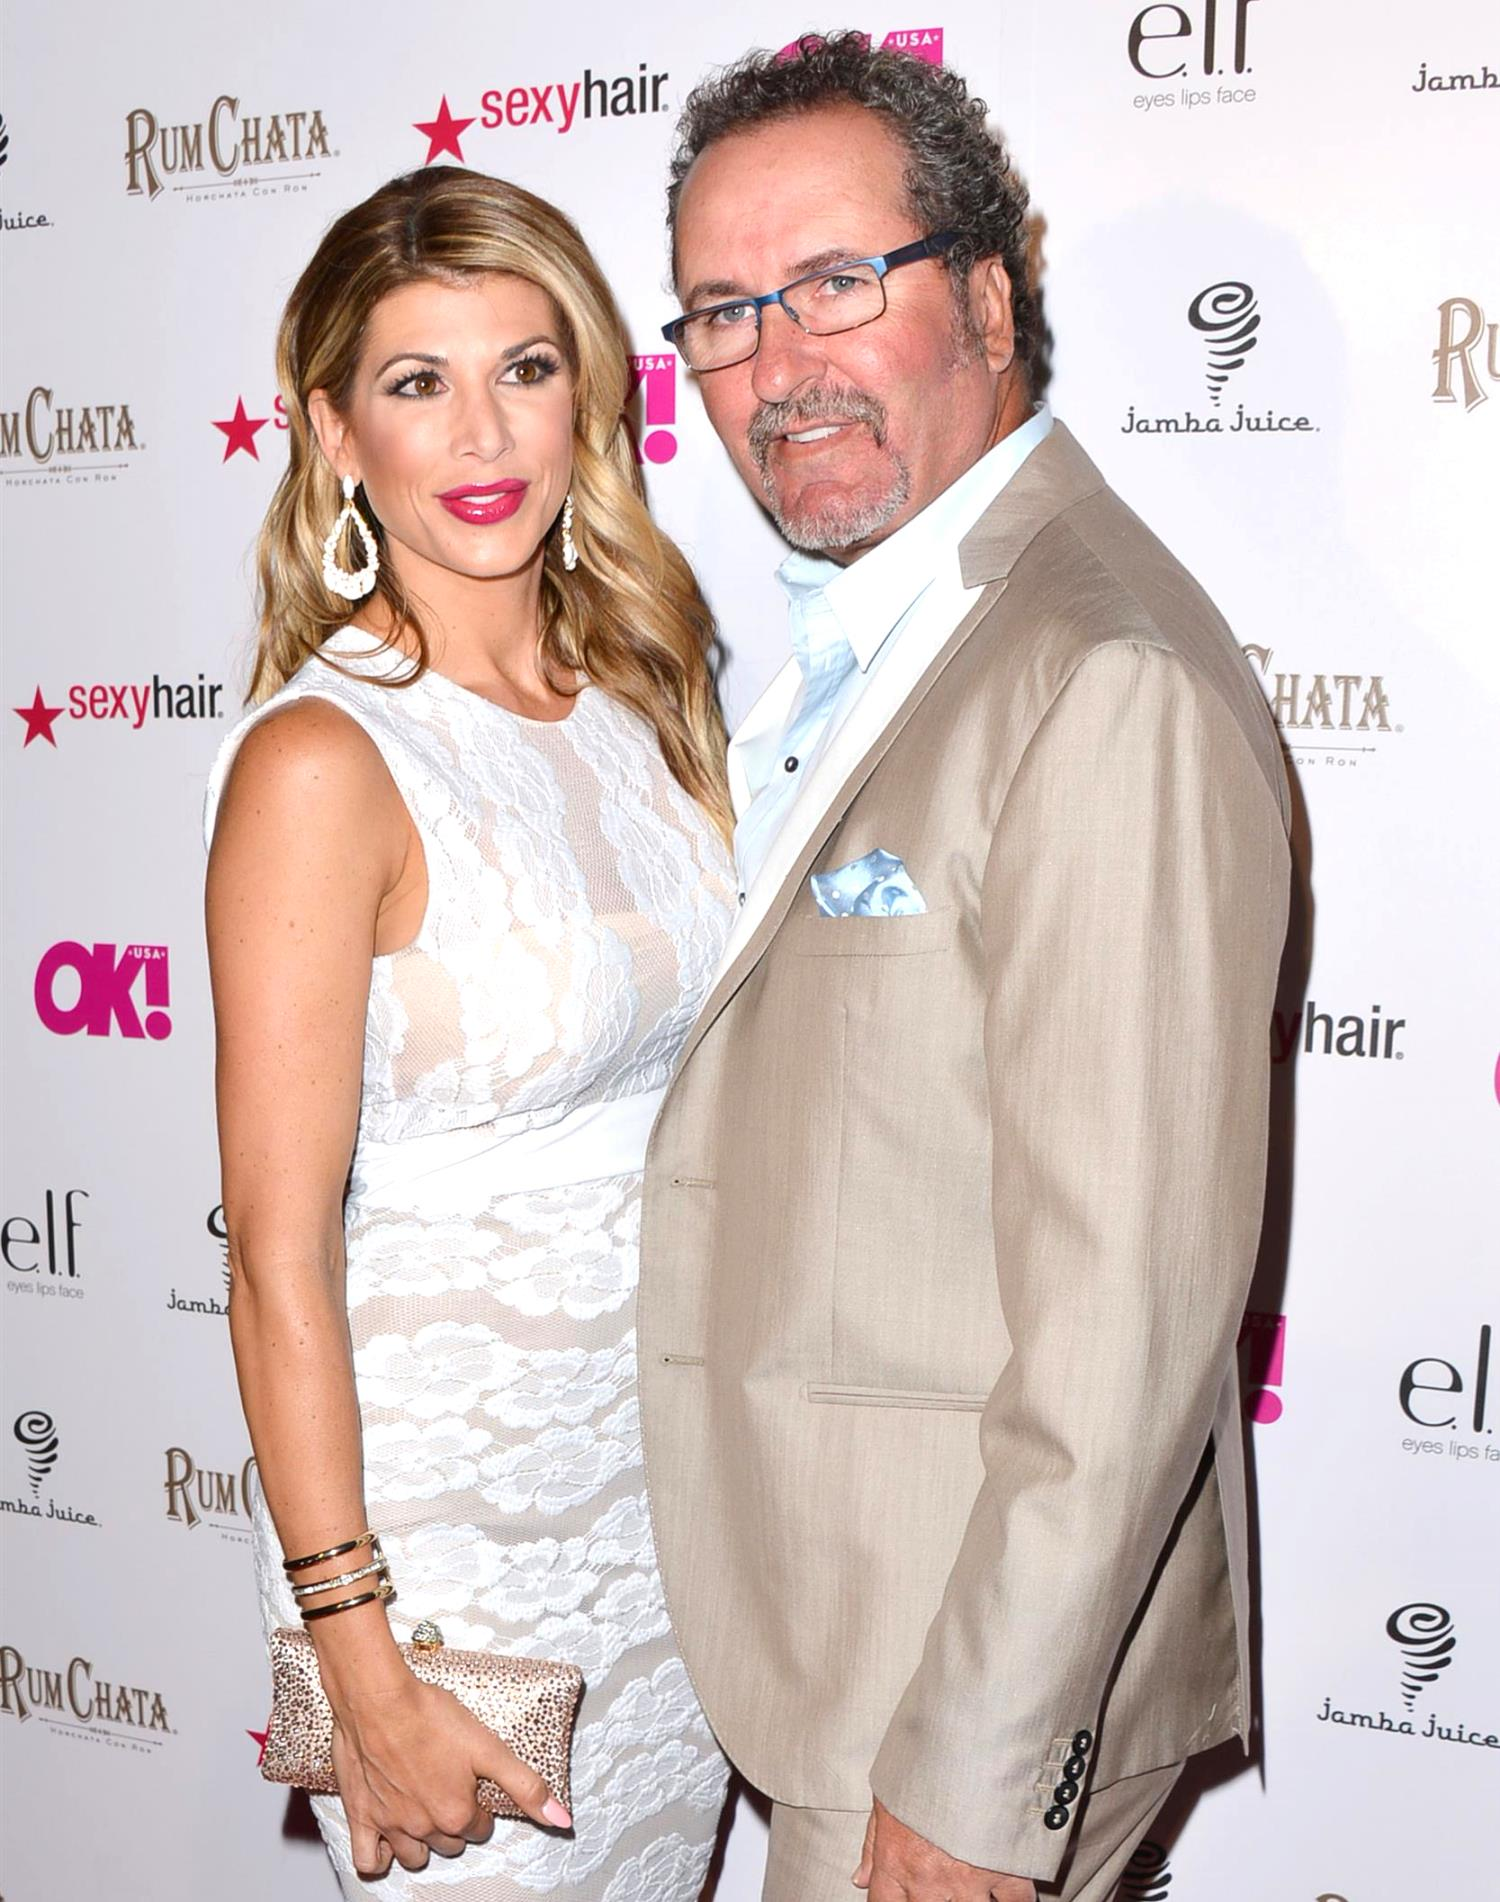 RHOC Alexis Bellino and Jim Bellino divorce settlement support payments revealed